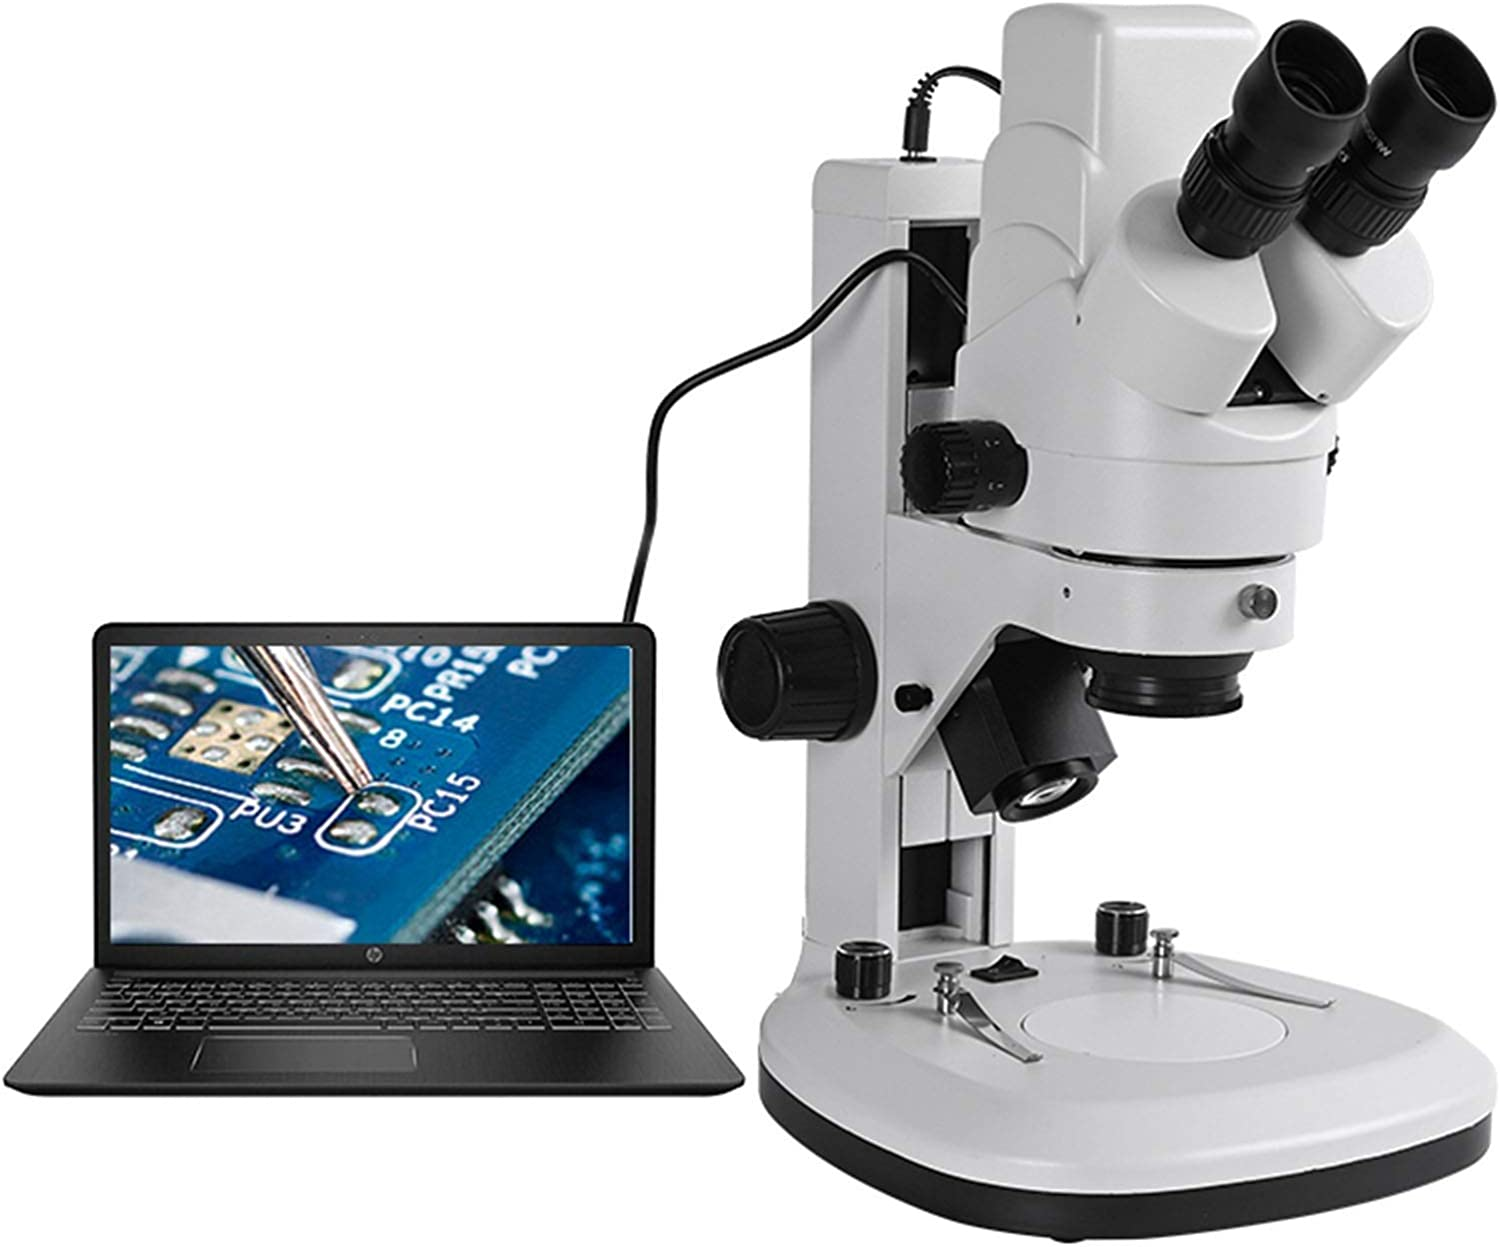 Magnification : 3.5X 90X Microscopes Microscope,Built-in Camera Electronic Eyepiece USB Zoom 3.5 90X Binocular HD Stereo Microscope Up//down LED Light for School Laboratory,Home Science Education